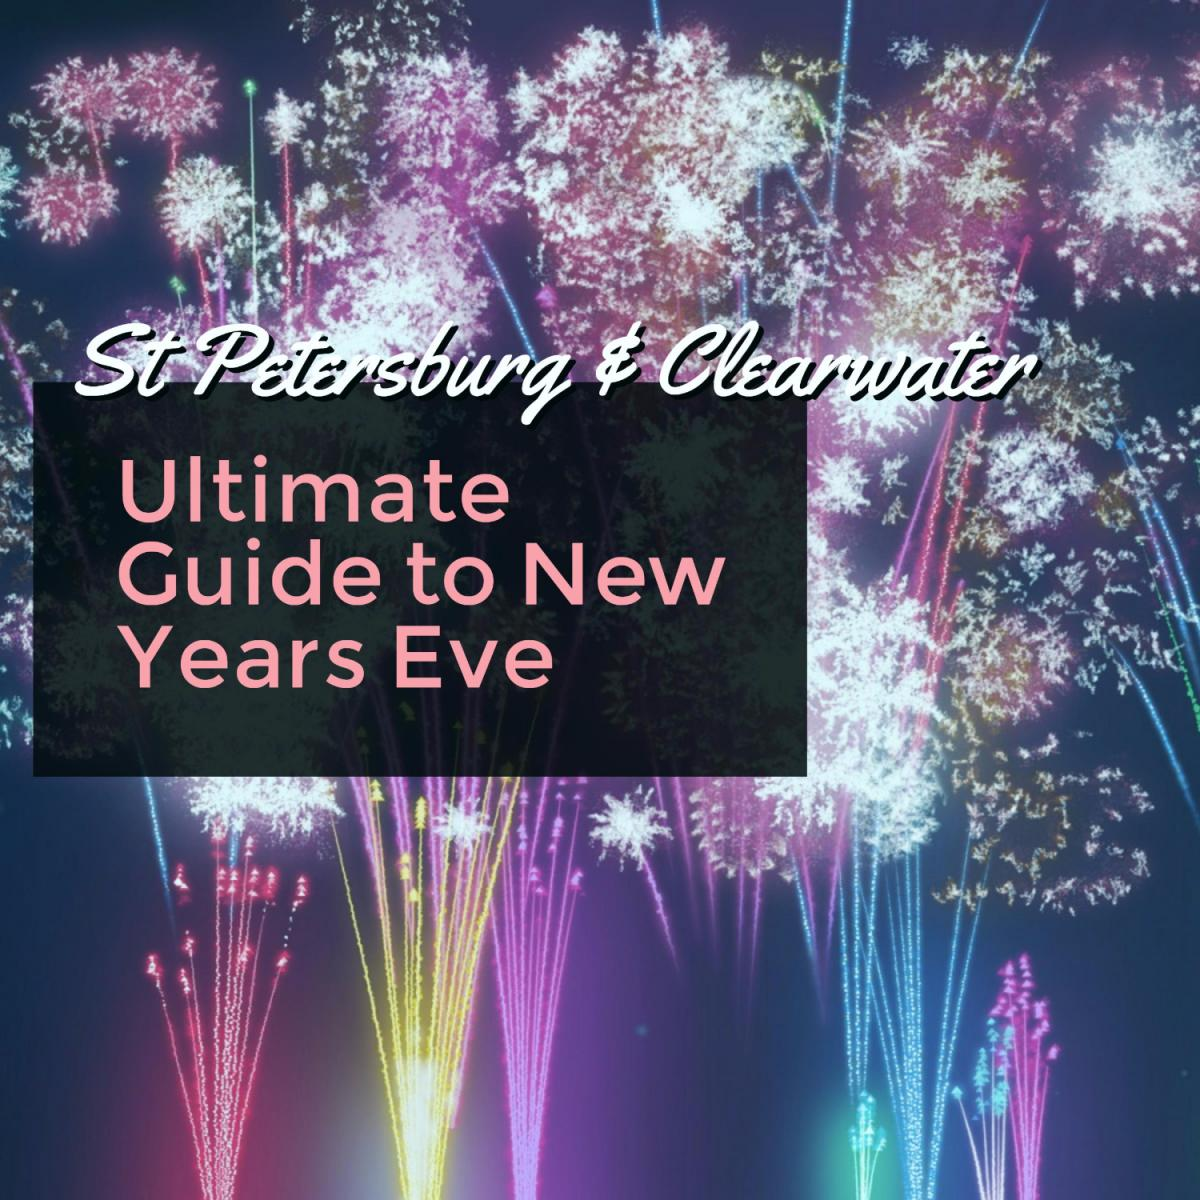 Ultimate Guide to New Years Eve St Petersburg & Clearwater